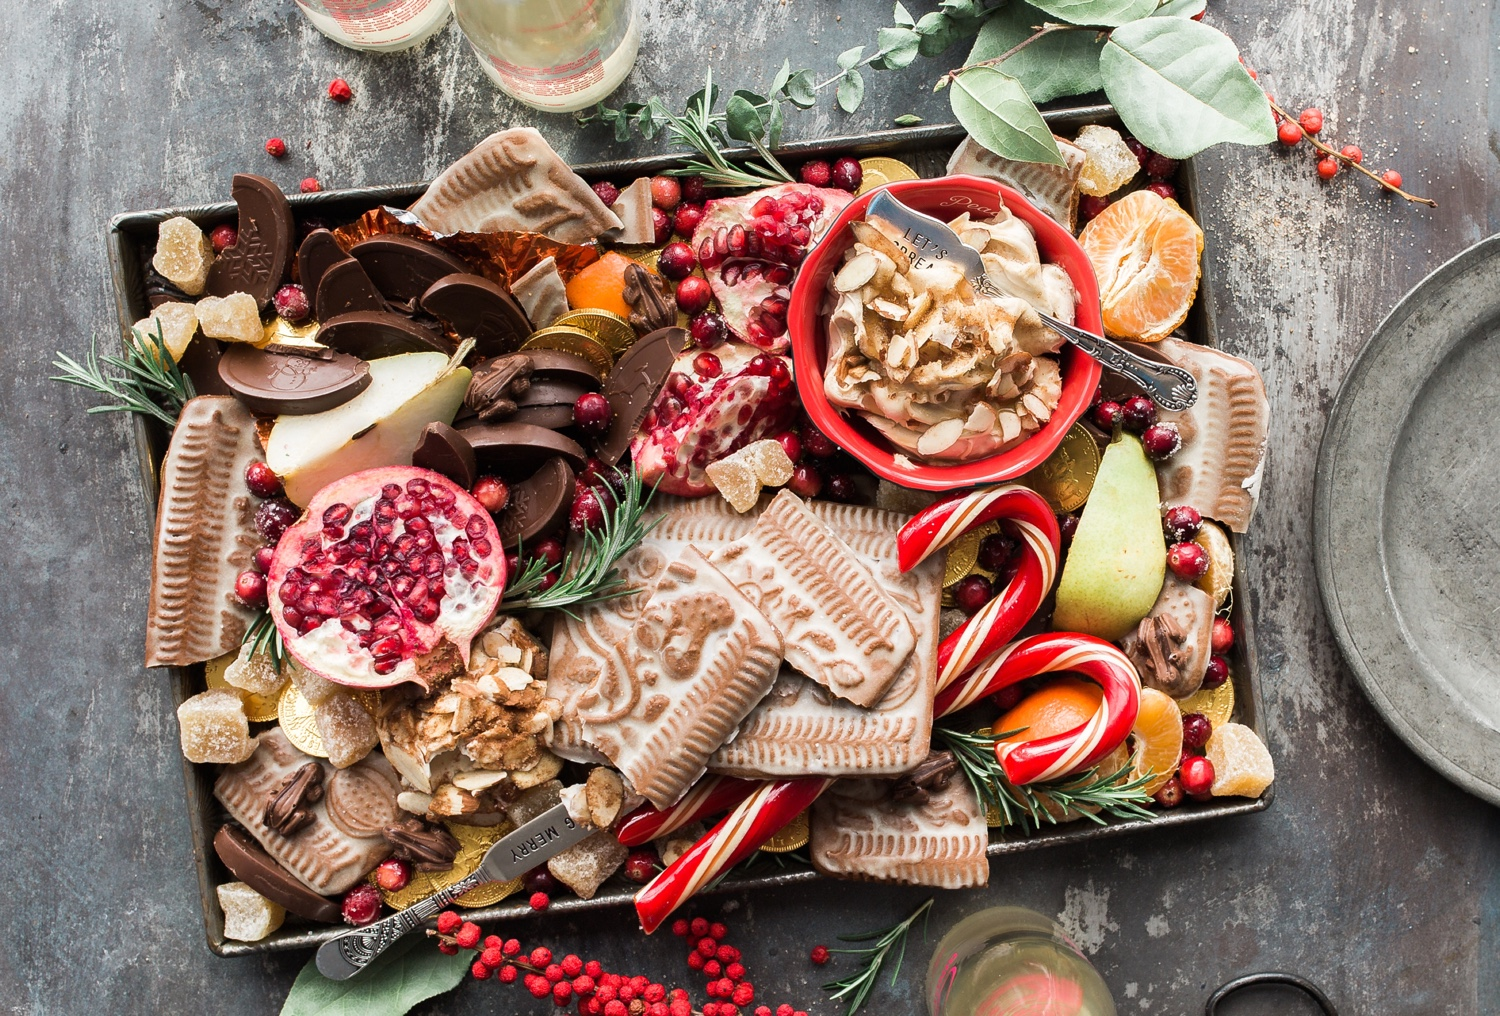 Navigating food, weight and body image issues, comments and diet talk around the holidays | Brownble